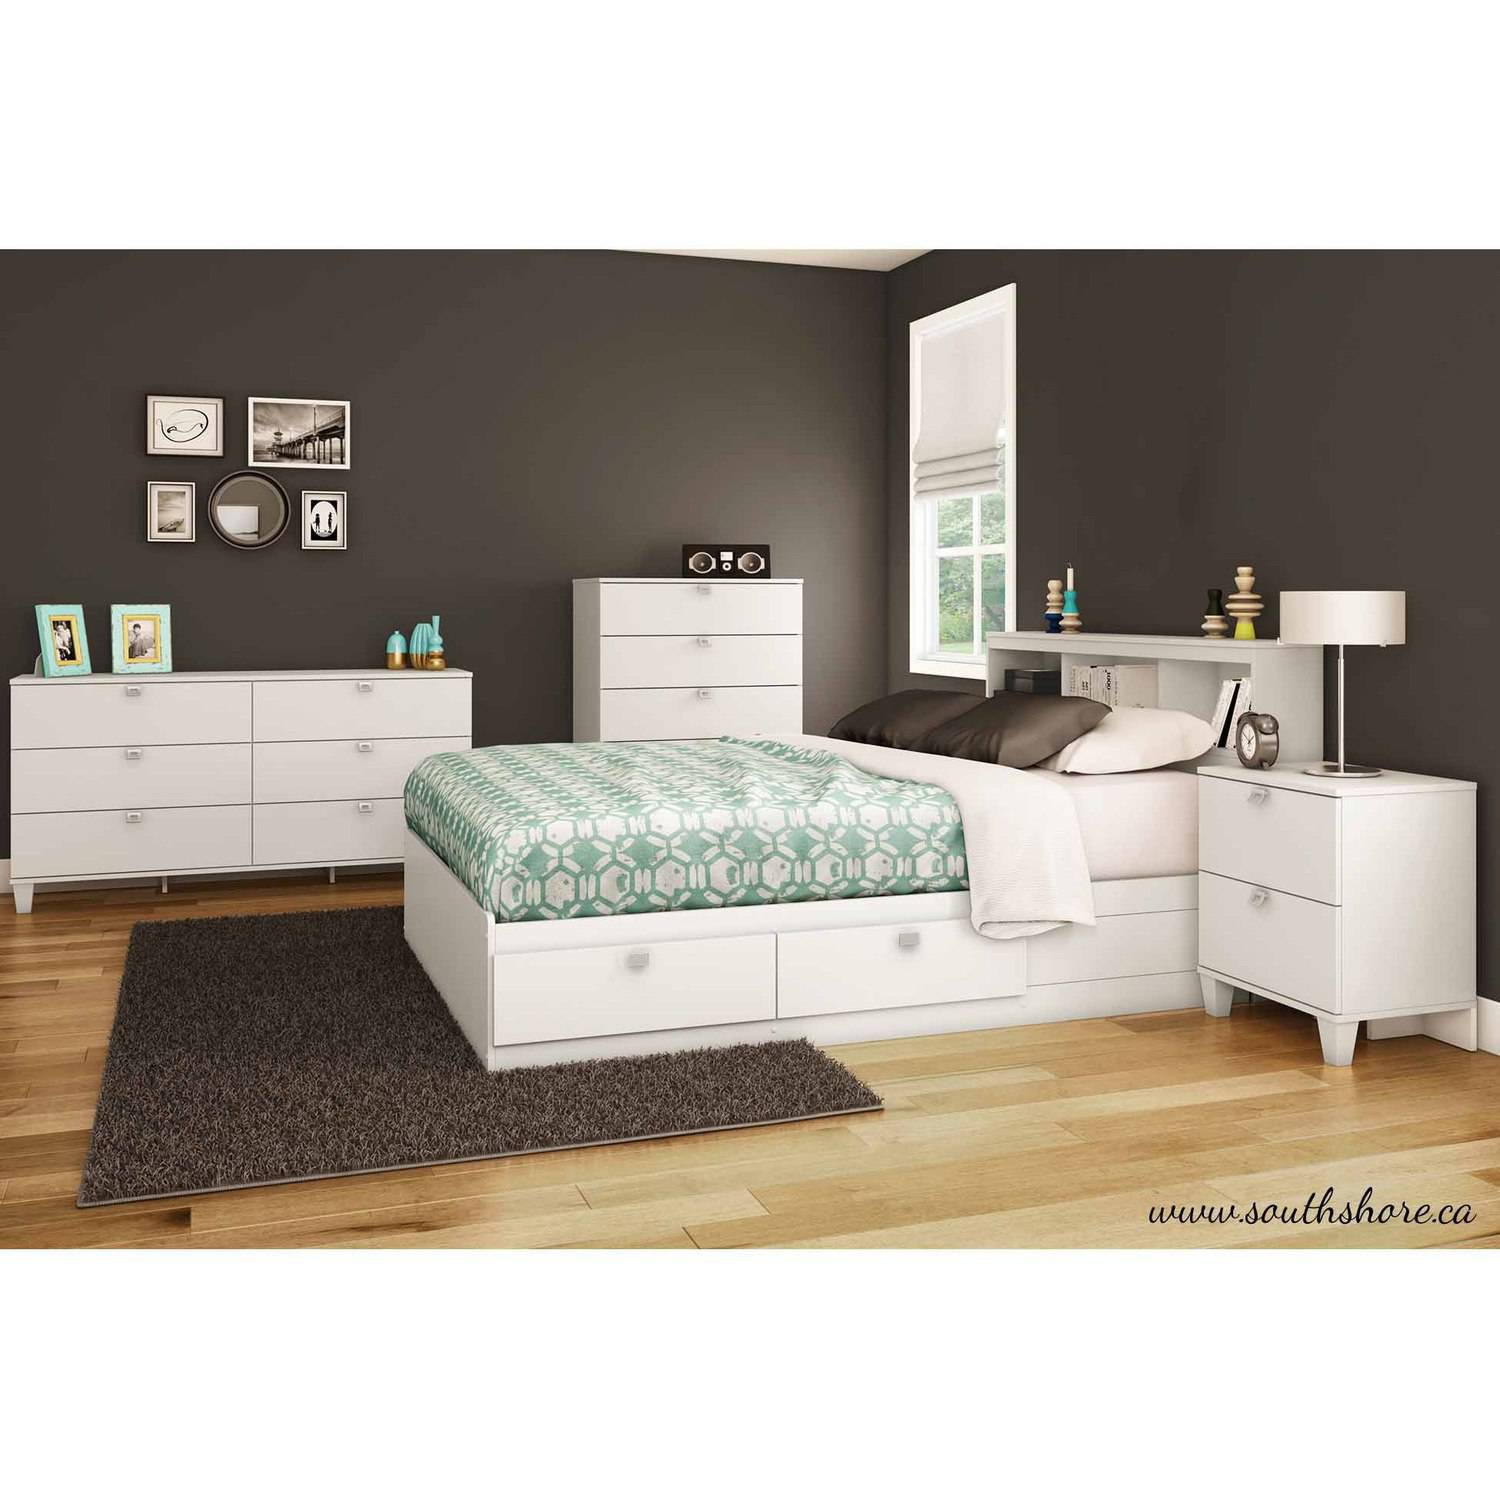 south shore bedroom furniture south shore karma bedroom furniture collection walmart 17385